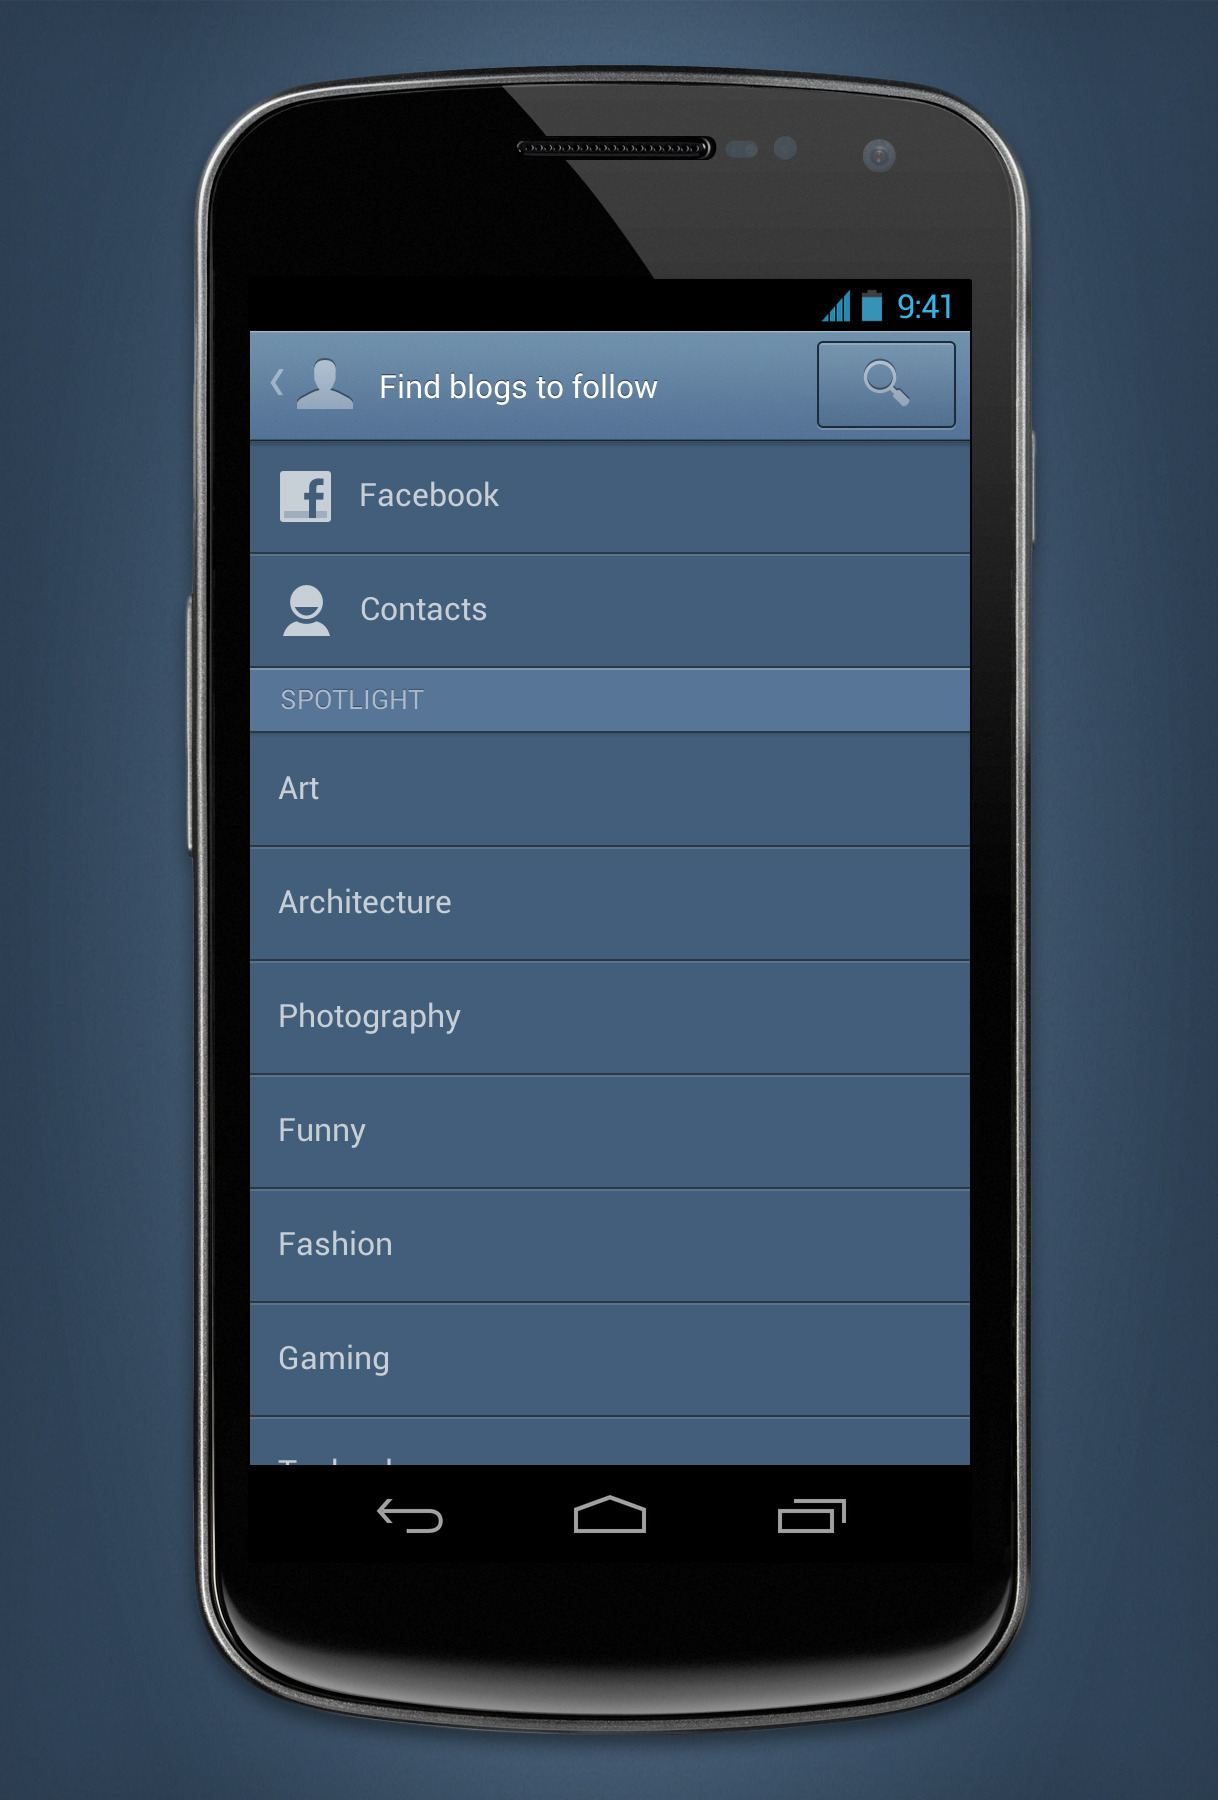 Boom, more great stuff from Tumblr - new mobile apps for iOS and Android. Great upgrades! Busy release week!   staff:  iPhone and Android updates are ready to download! In our continued quest to make your mobile Tumblr experience sick as hell, we've updated our iOS and Android apps with a host of fixes, features, and improvements. Notable new things include: Notifications get a slick new thingy. Find blogs to follow through your contacts or Facebook. Your friends can now sign up right inside the app. Track tags that you find amazing. (Android already had this.) Fast reblog when no words are needed. (Just click and hold the reblog icon.) Hold down the Like icon for some new sharing options. Fan Mail! Message to your heart's content. The apps (and updates) are available in the App Store or Google Play. Enjoy!